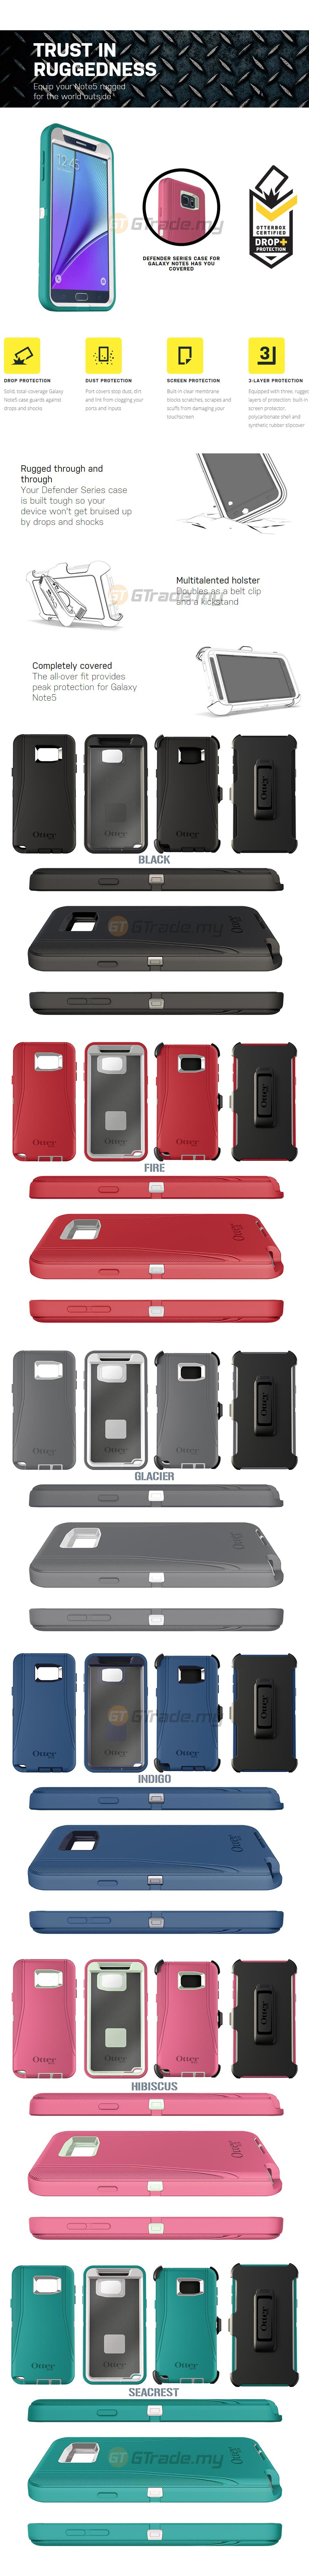 otterbox-defender-drop-scrape-protect-belt-clip-holster-stand-case-samsung-galaxy-note-5-p